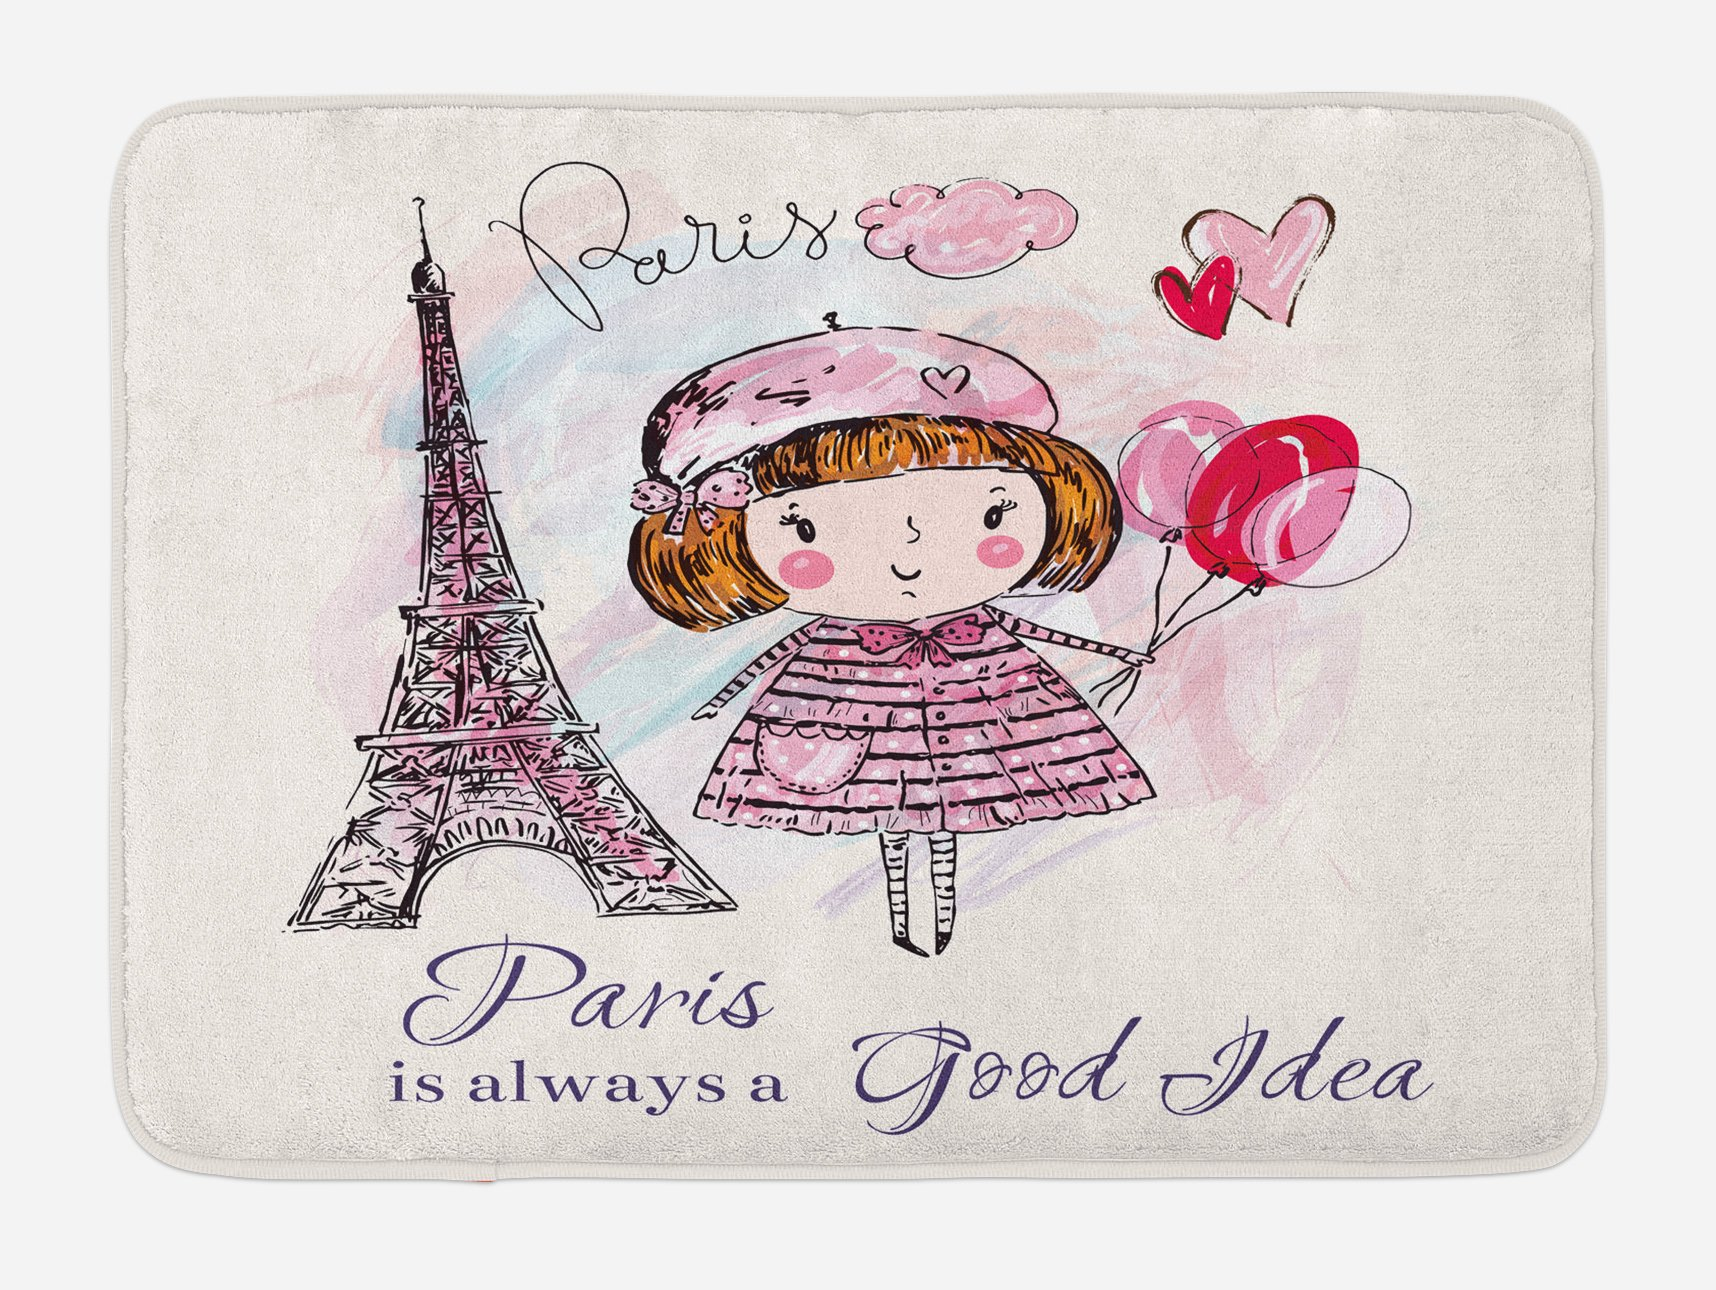 Ambesonne Paris Bath Mat, Little Girl Holding Balloons Hearts a Cloud and Eiffel Tower Illustration, Plush Bathroom Decor Mat with Non Slip Backing, 29.5 W X 17.5 W Inches, Pale Pink Purple White